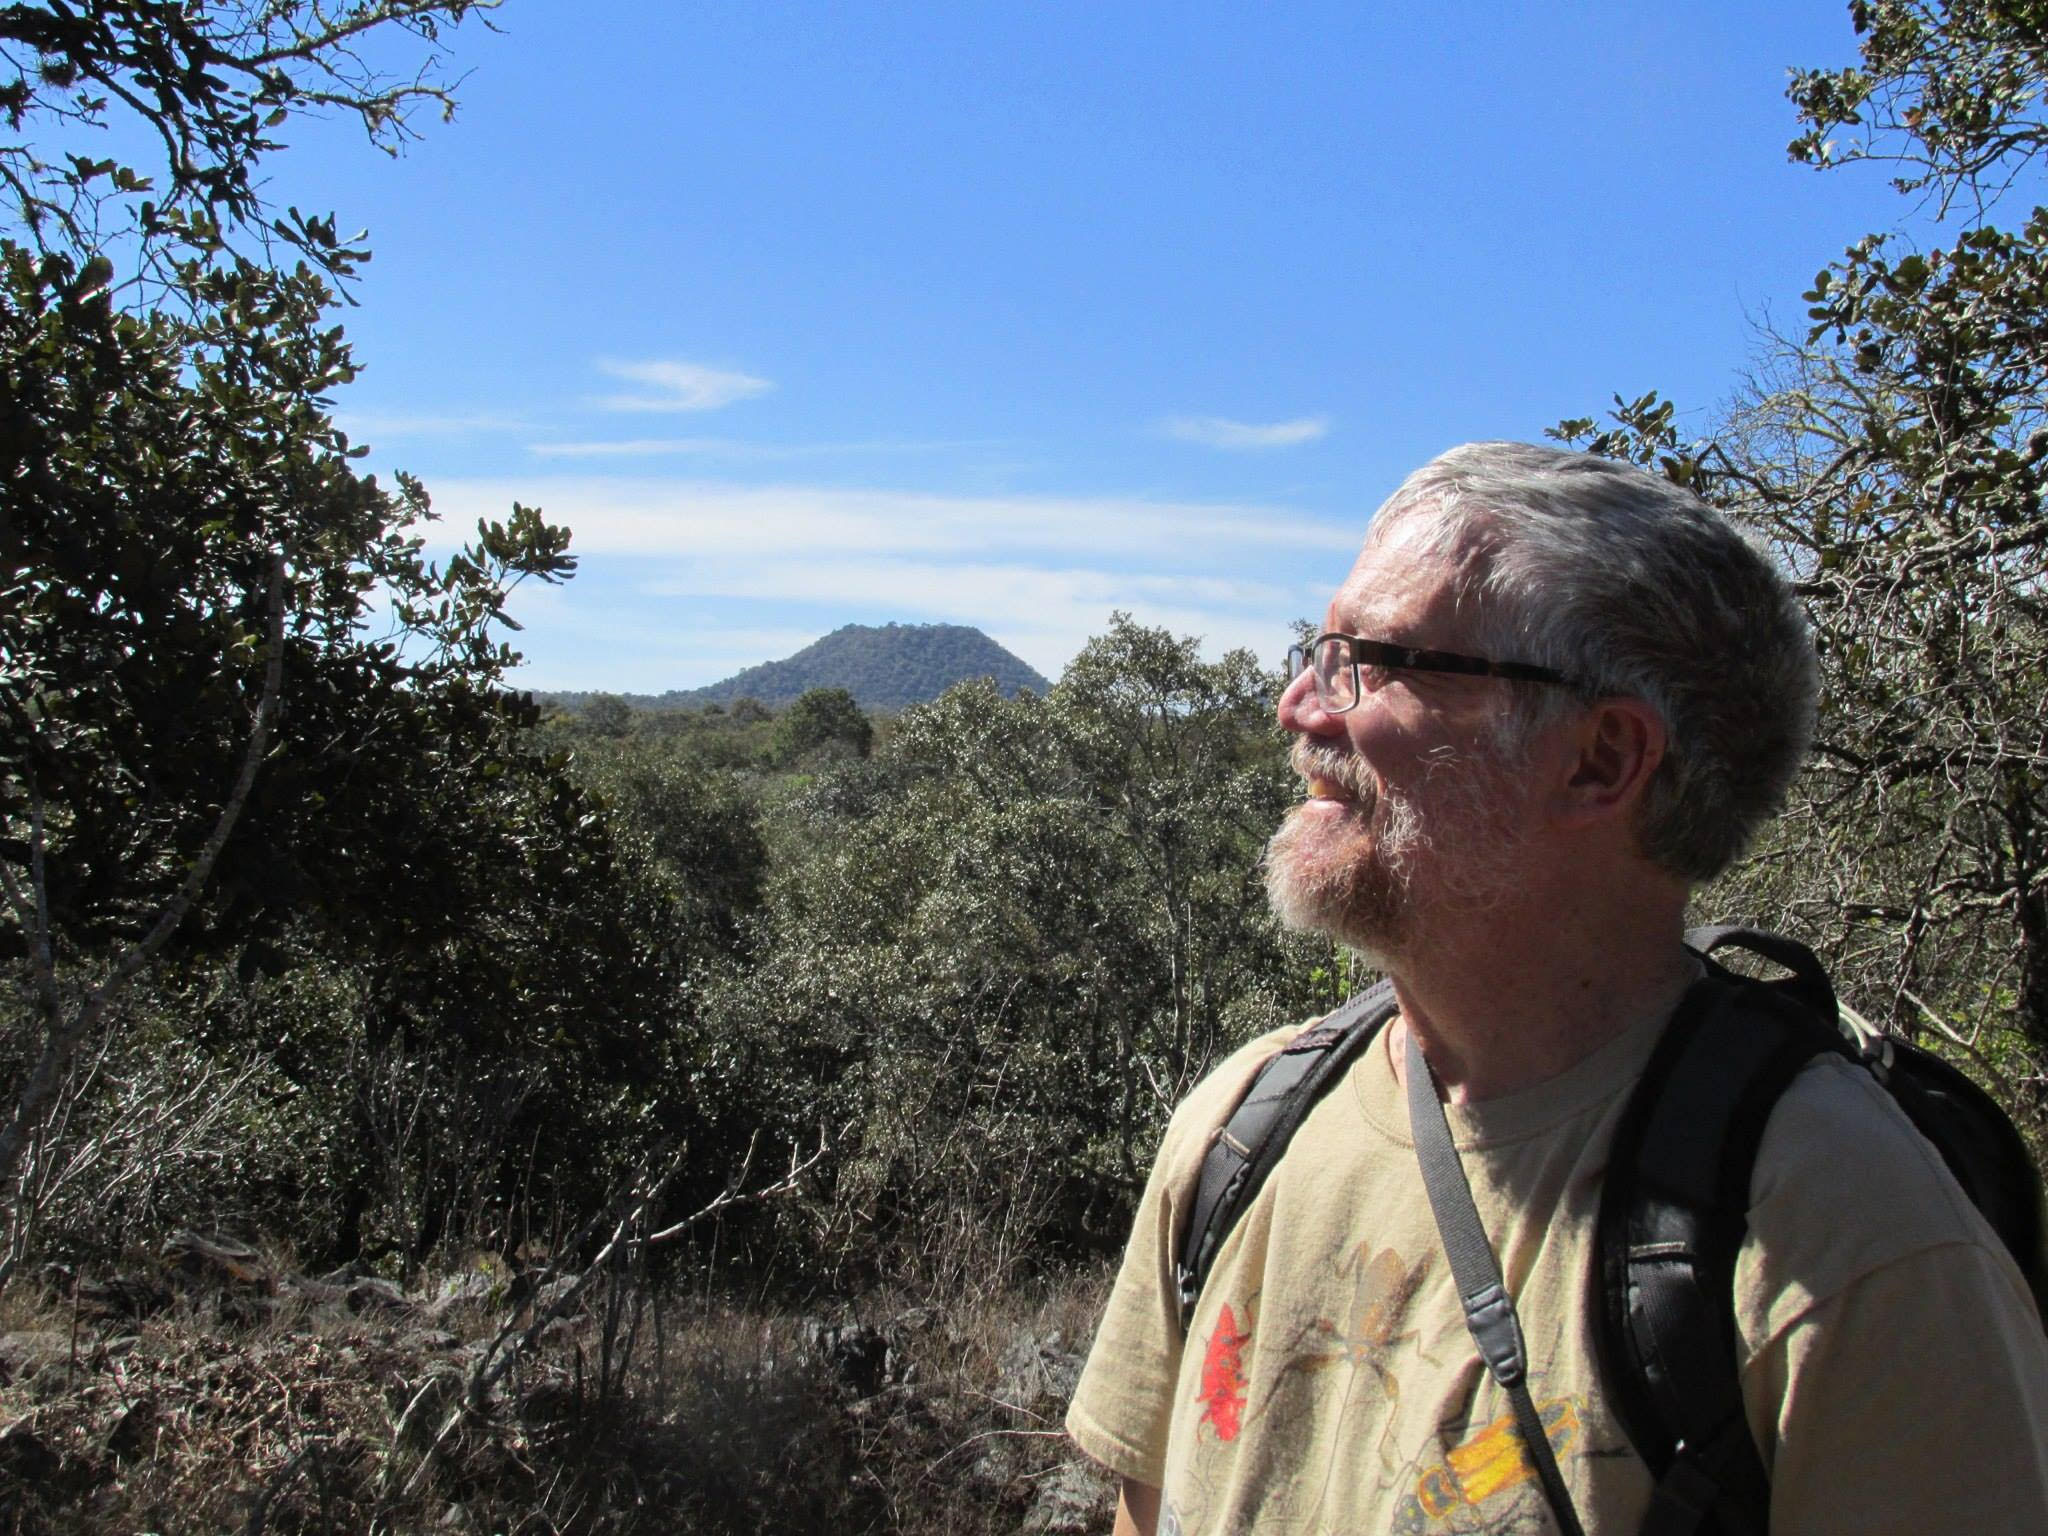 Doug Taron , chief curator at Chicago Academy of Sciences' Peggy Notebaert Nature Museum, pauses during a hike in the mountains of the Transvolcanic Belt of Mexico. Monarchs migrate to this area during the winter.